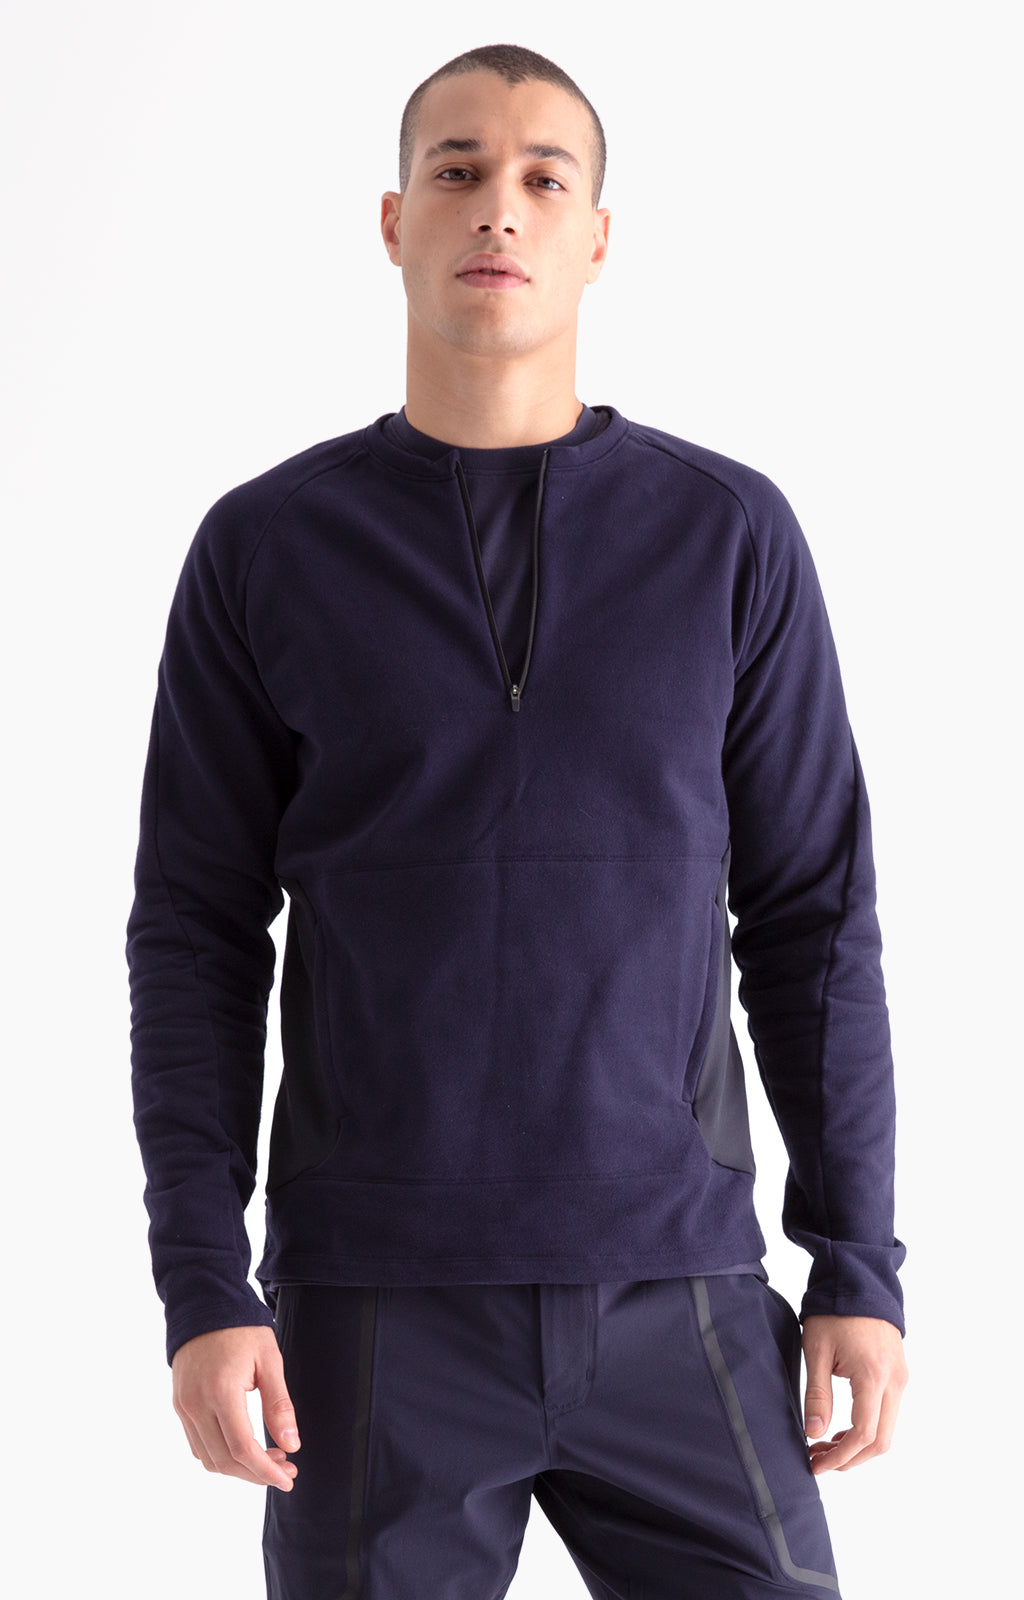 Impulse - Zip-front Traveler's Knit Pullover in Dark Blue